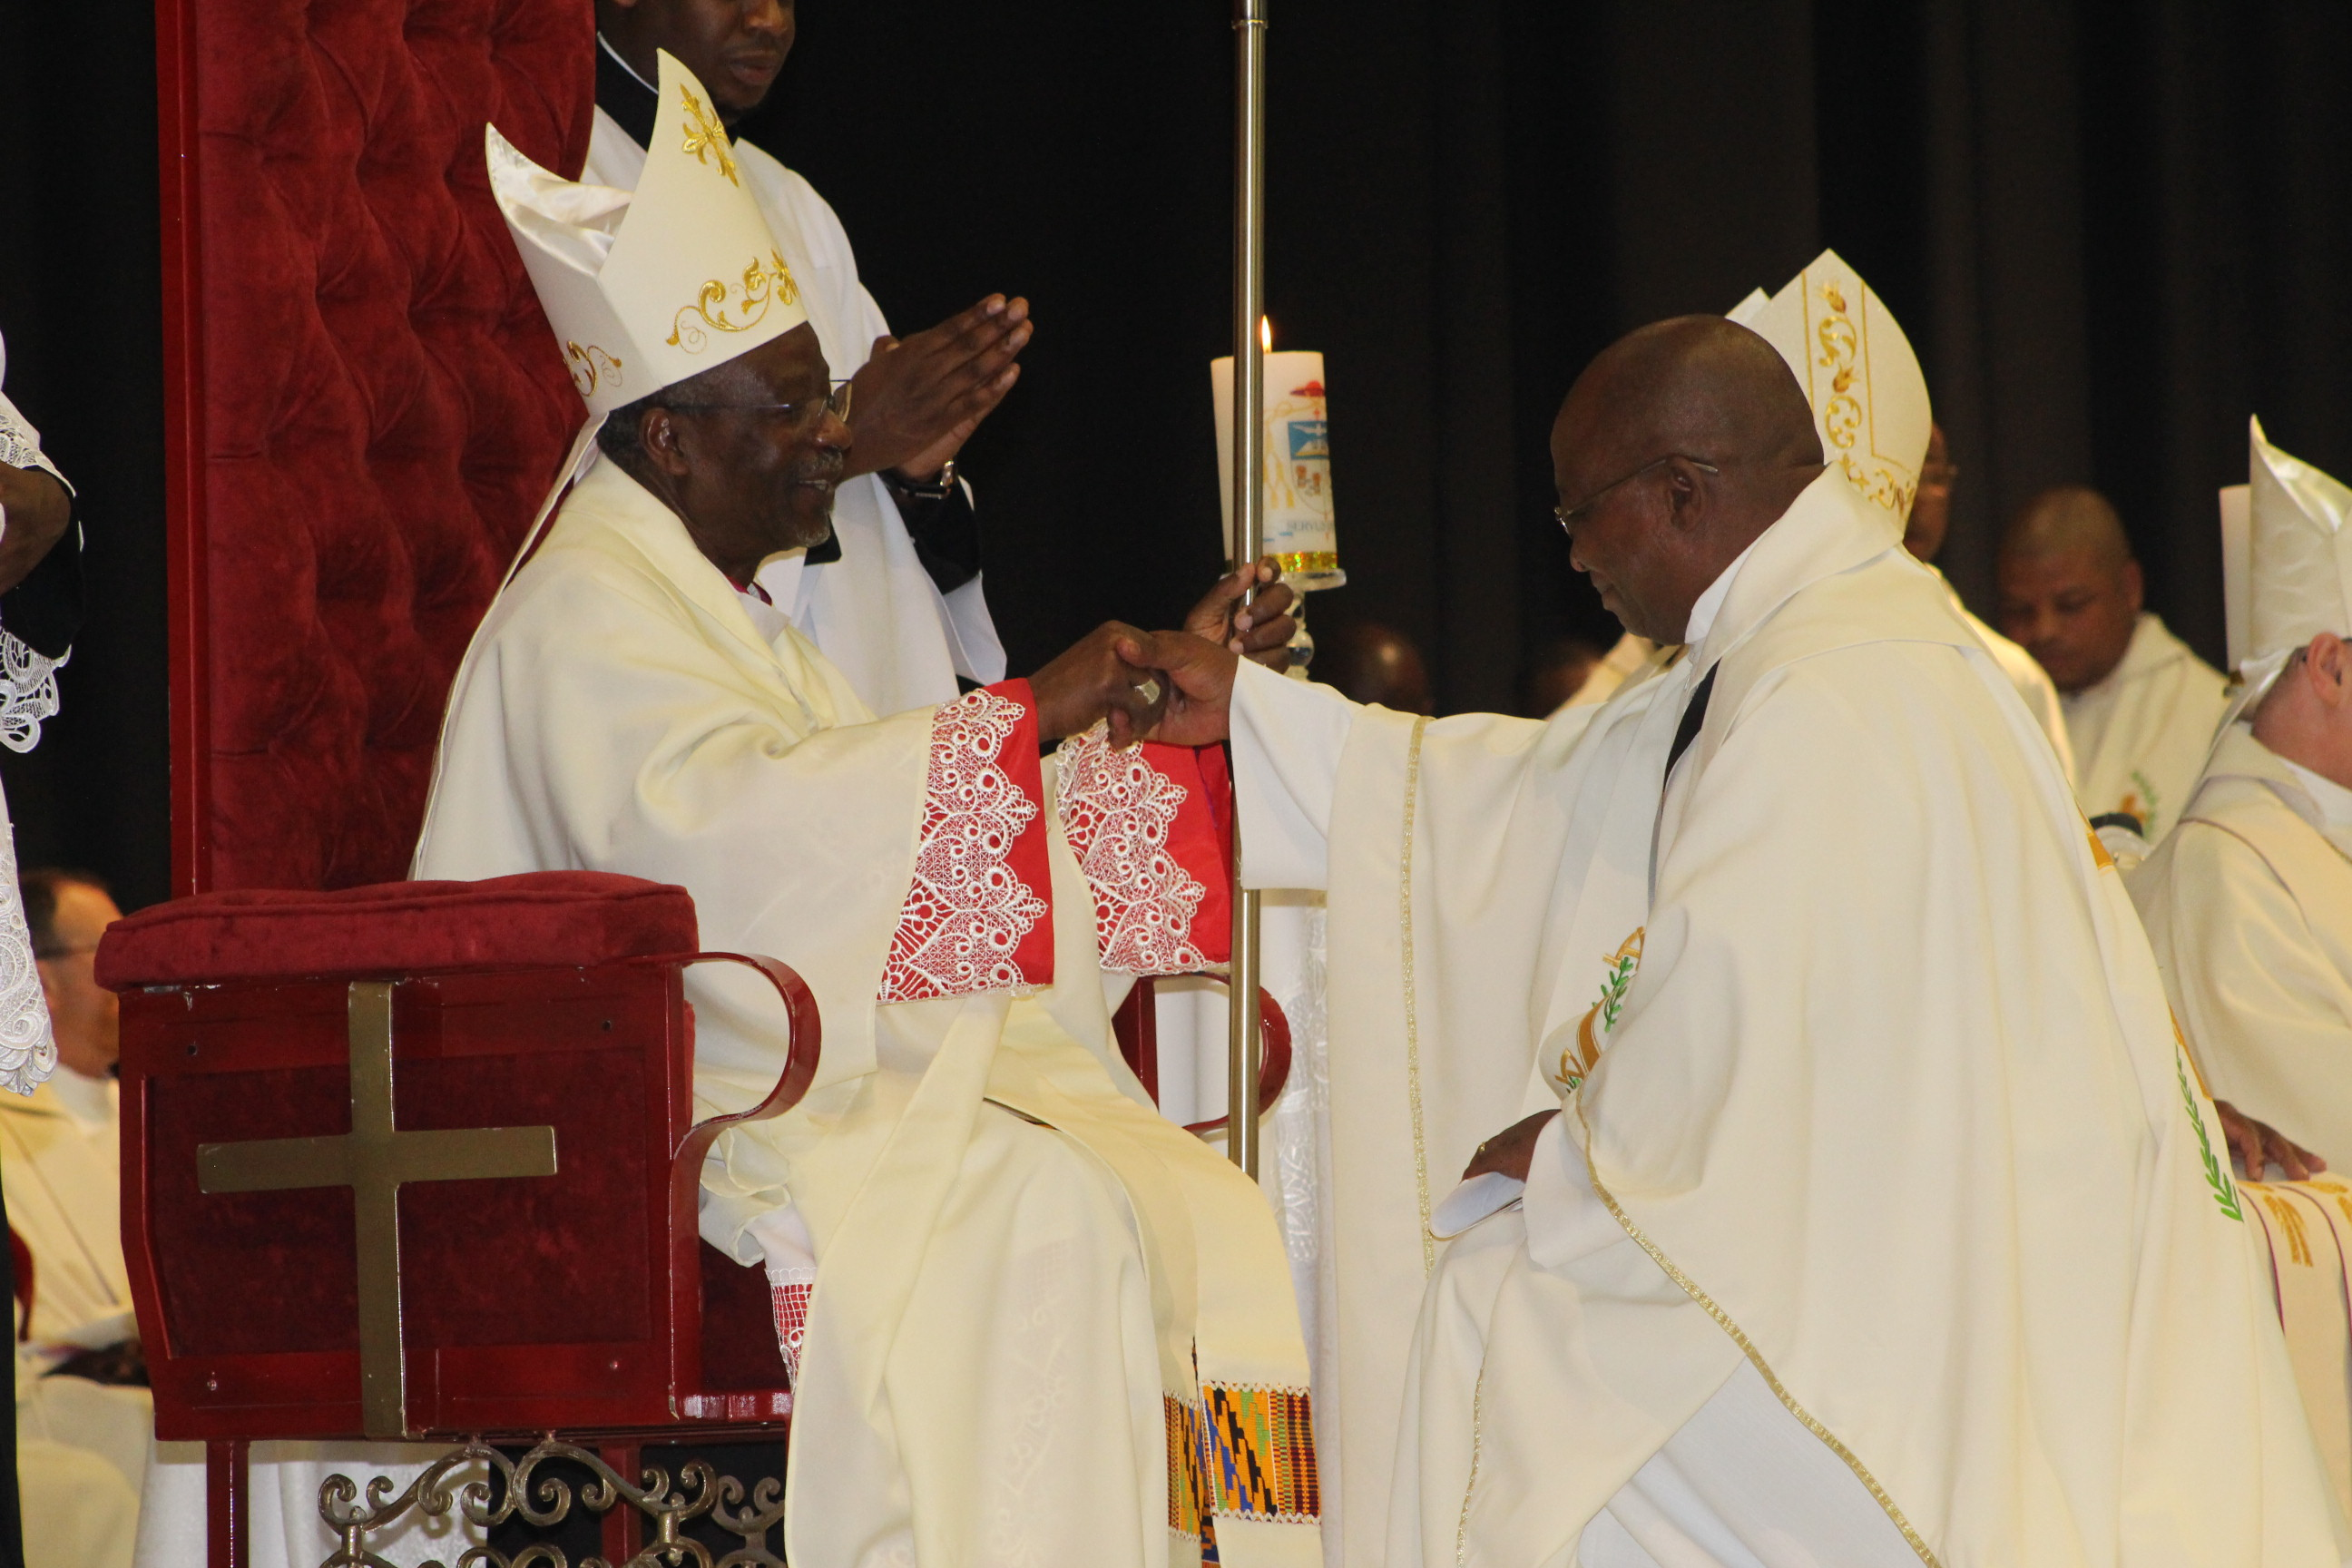 Bishop Frank Nubuasah being welcomed and greeted by Johannes P. Kgaodi, on of the senior priests of Gaborone Diocese